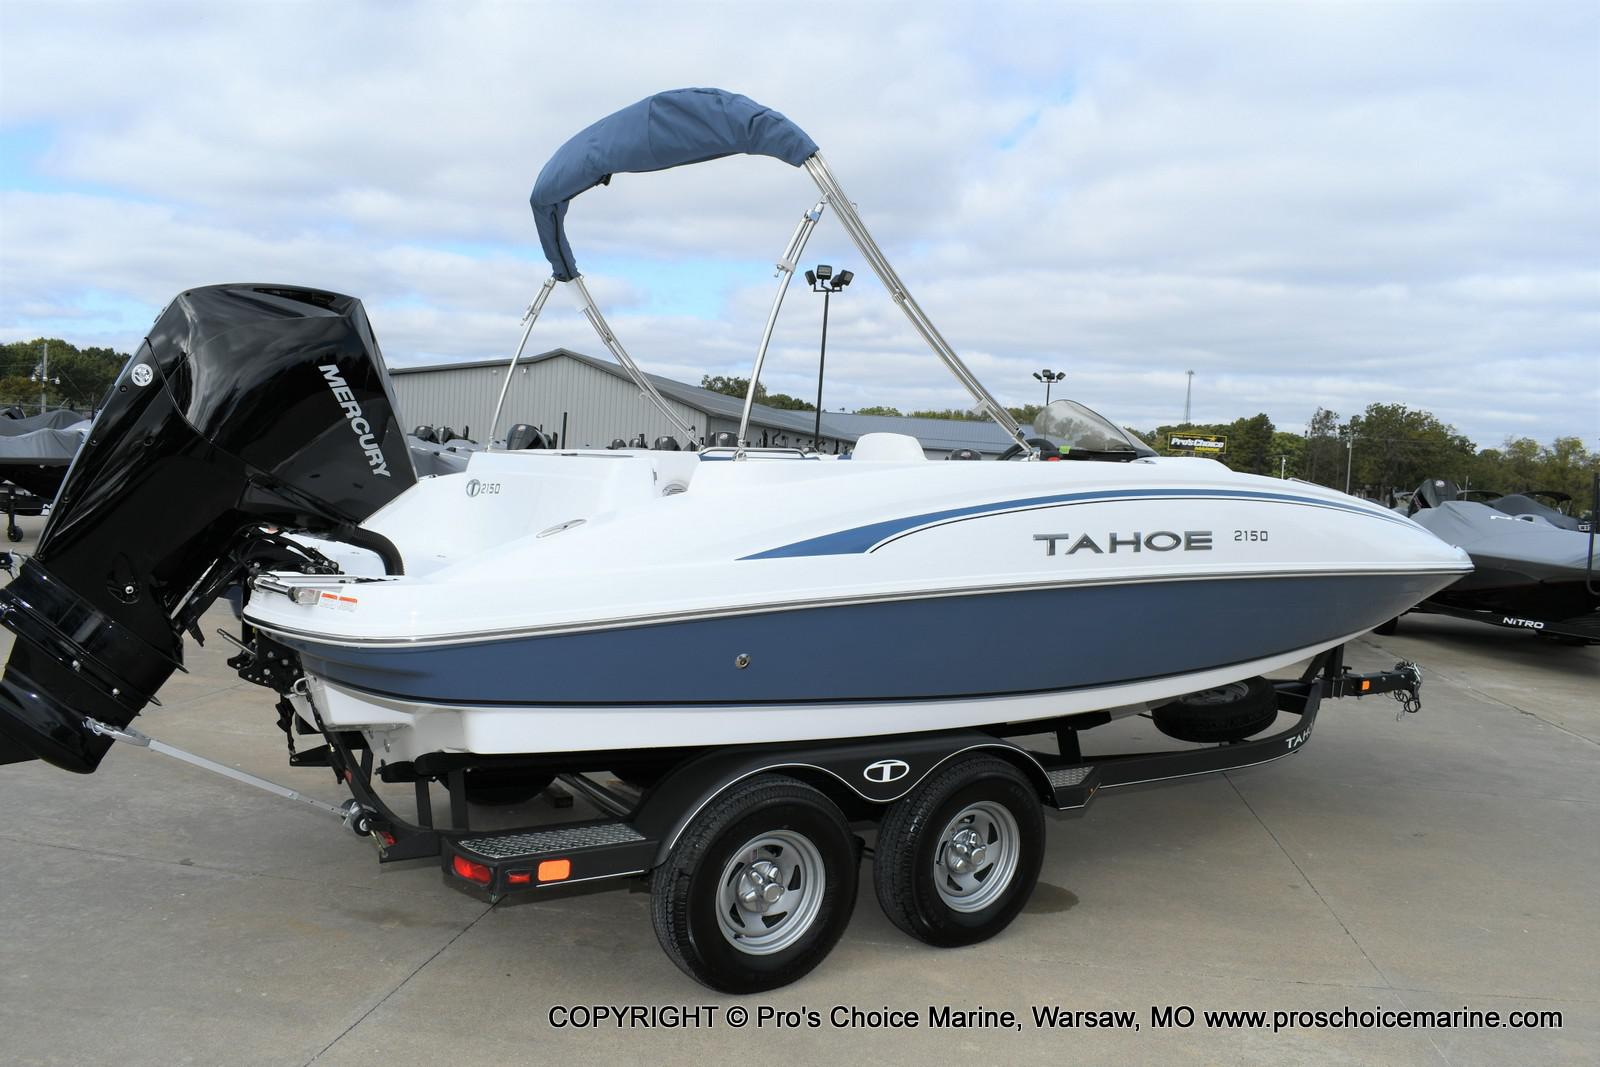 2020 Tahoe boat for sale, model of the boat is 2150 & Image # 50 of 50